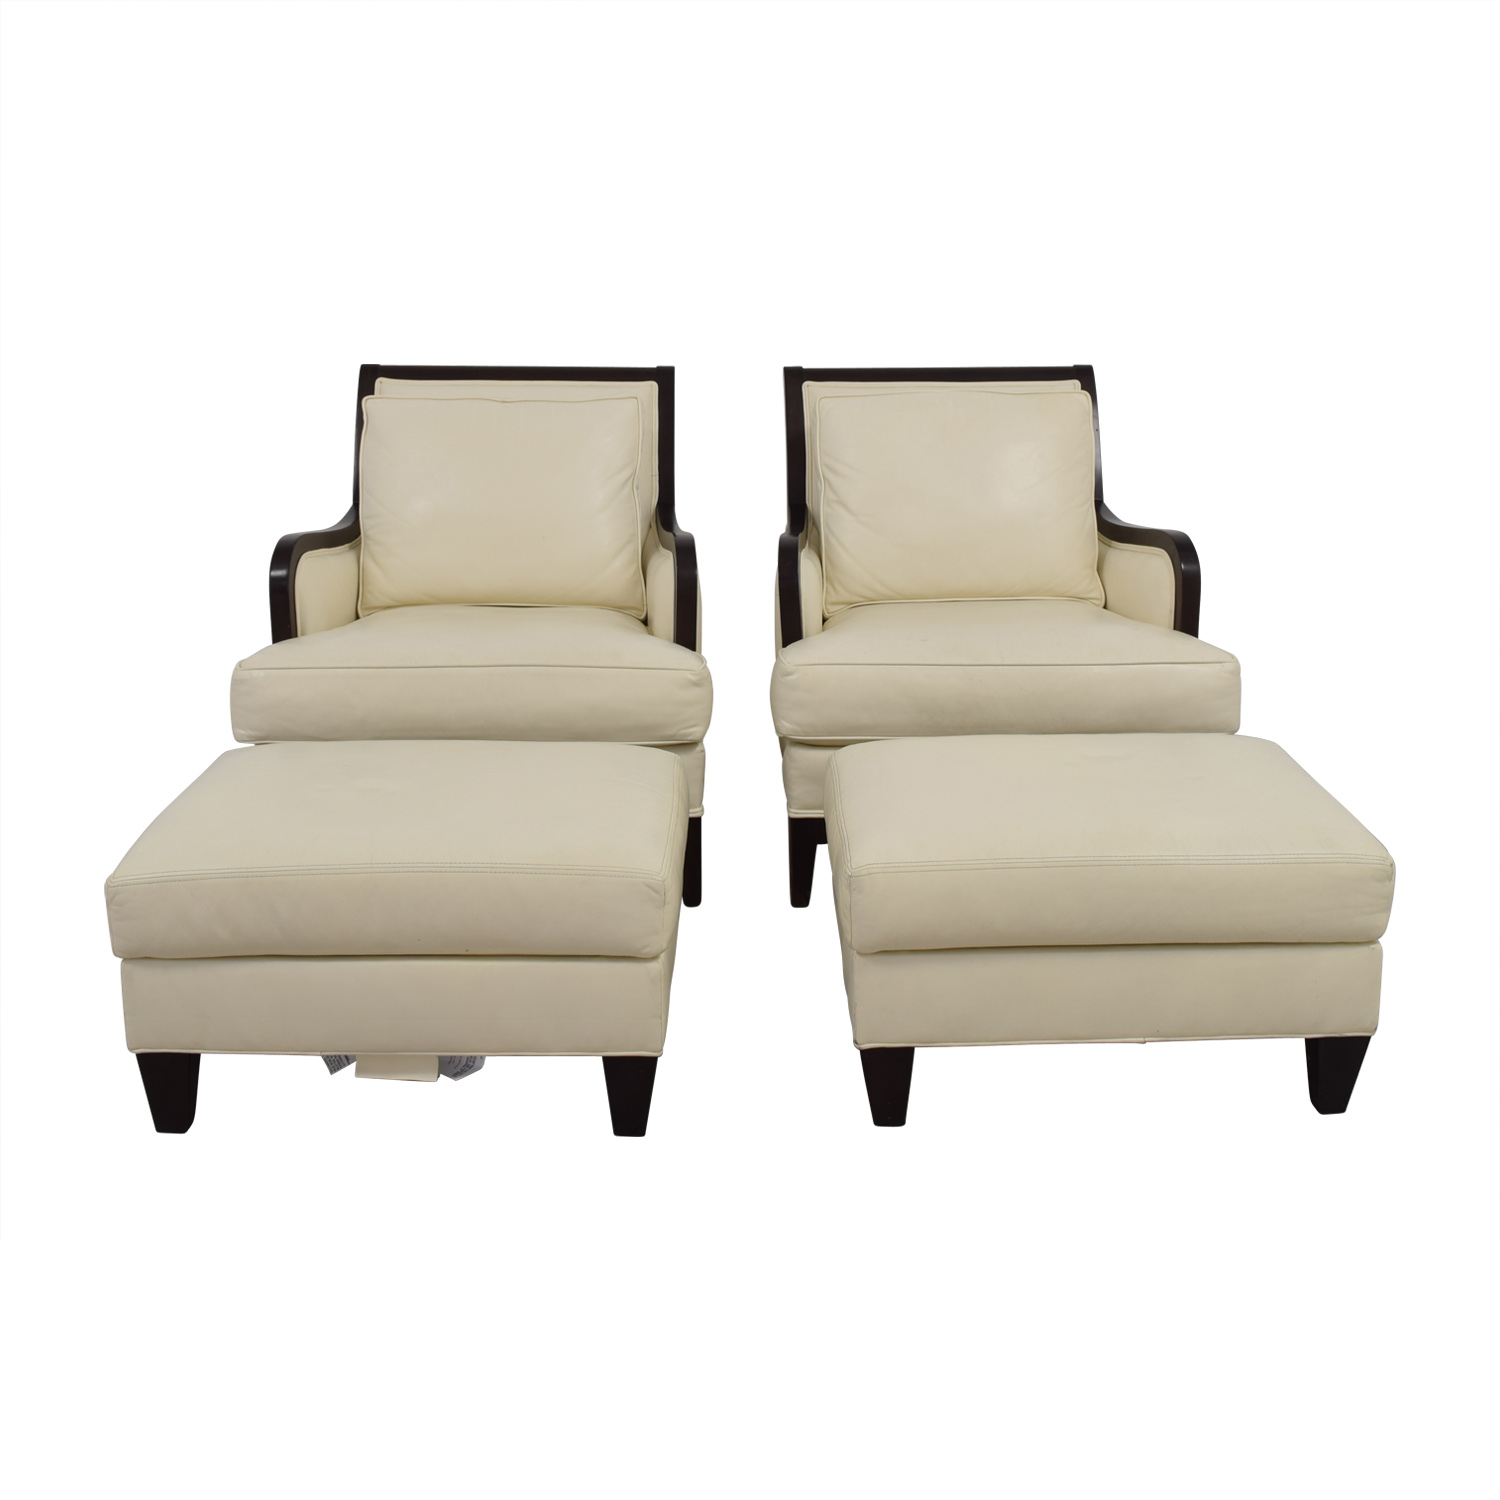 chair and ottoman sets under 200 covers saskatoon 65 off pier 1 imports hourglass